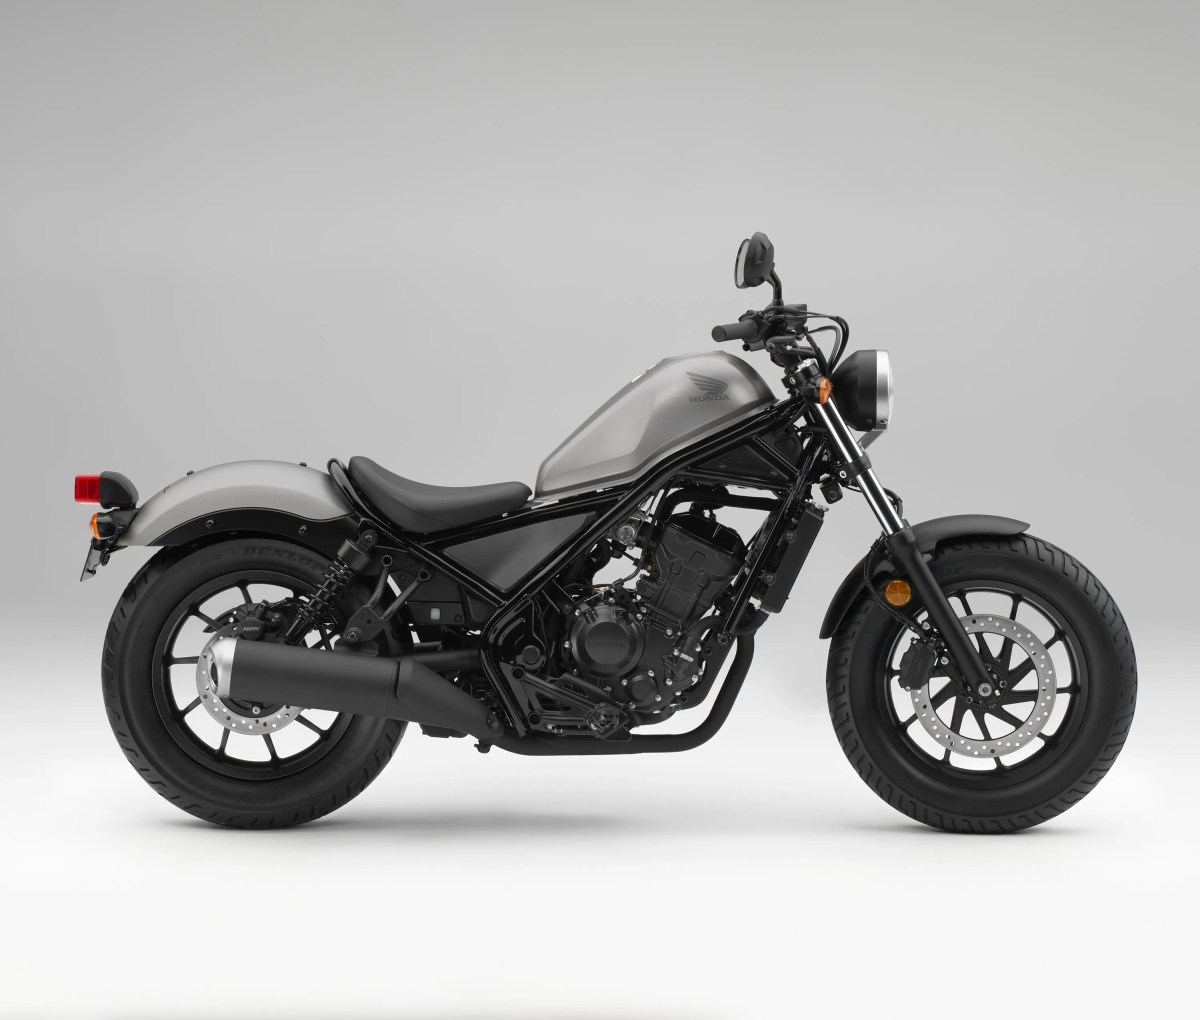 New Honda Rebel 500 & Rebel 300 Models Debut